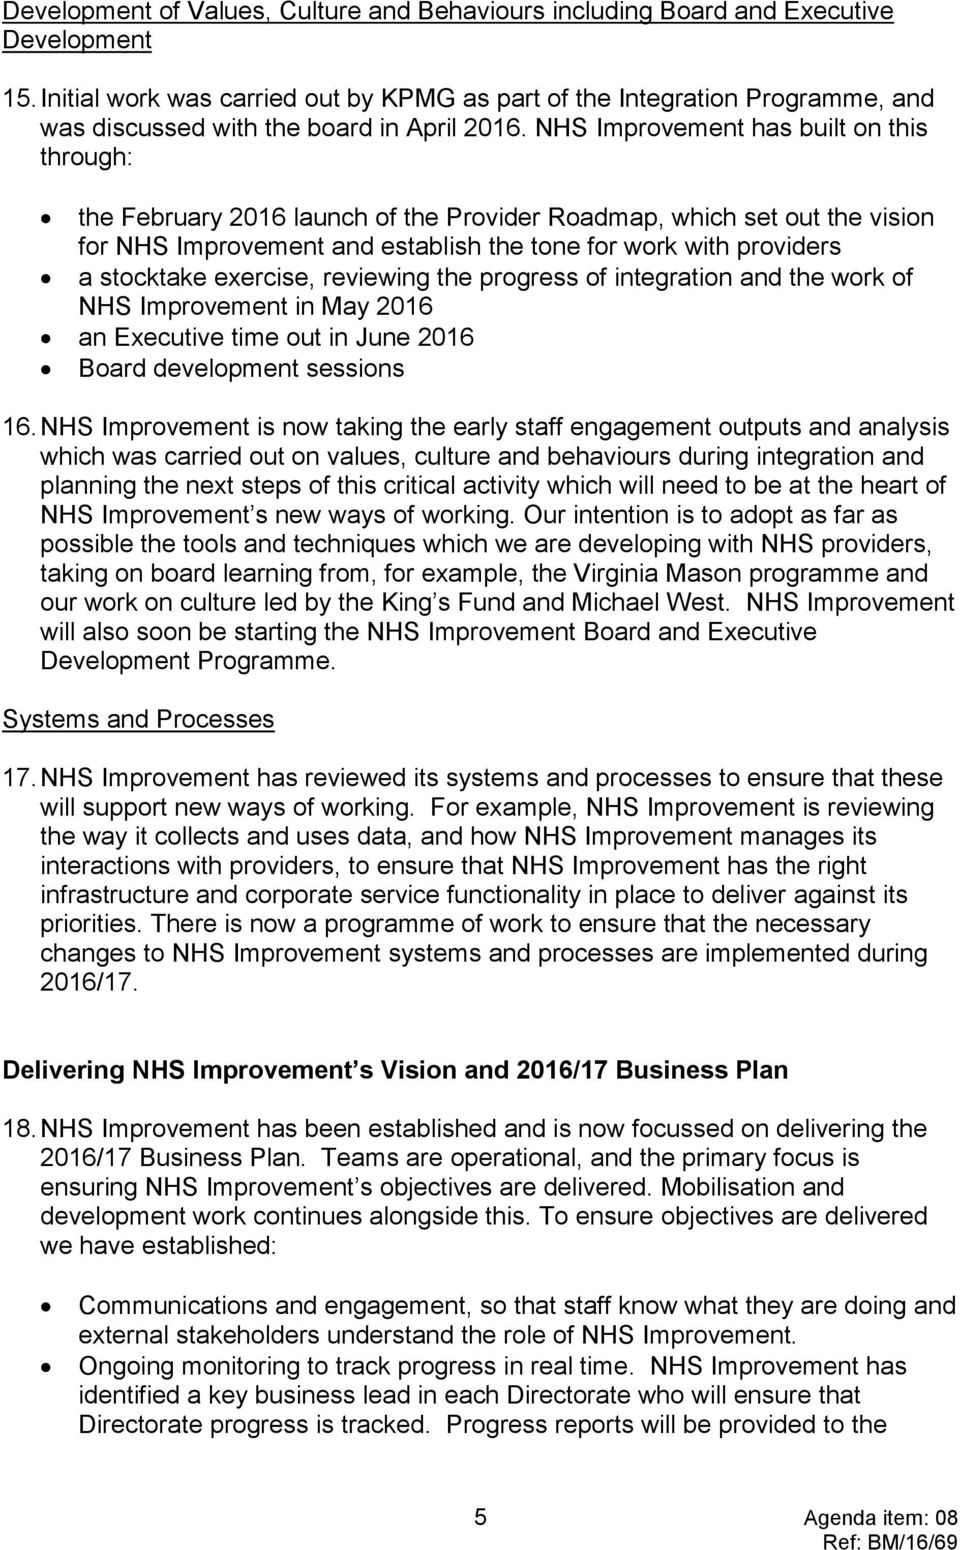 exercise, reviewing the progress of integration and the work of NHS Improvement in May 2016 an time out in June 2016 Board development sessions 16.